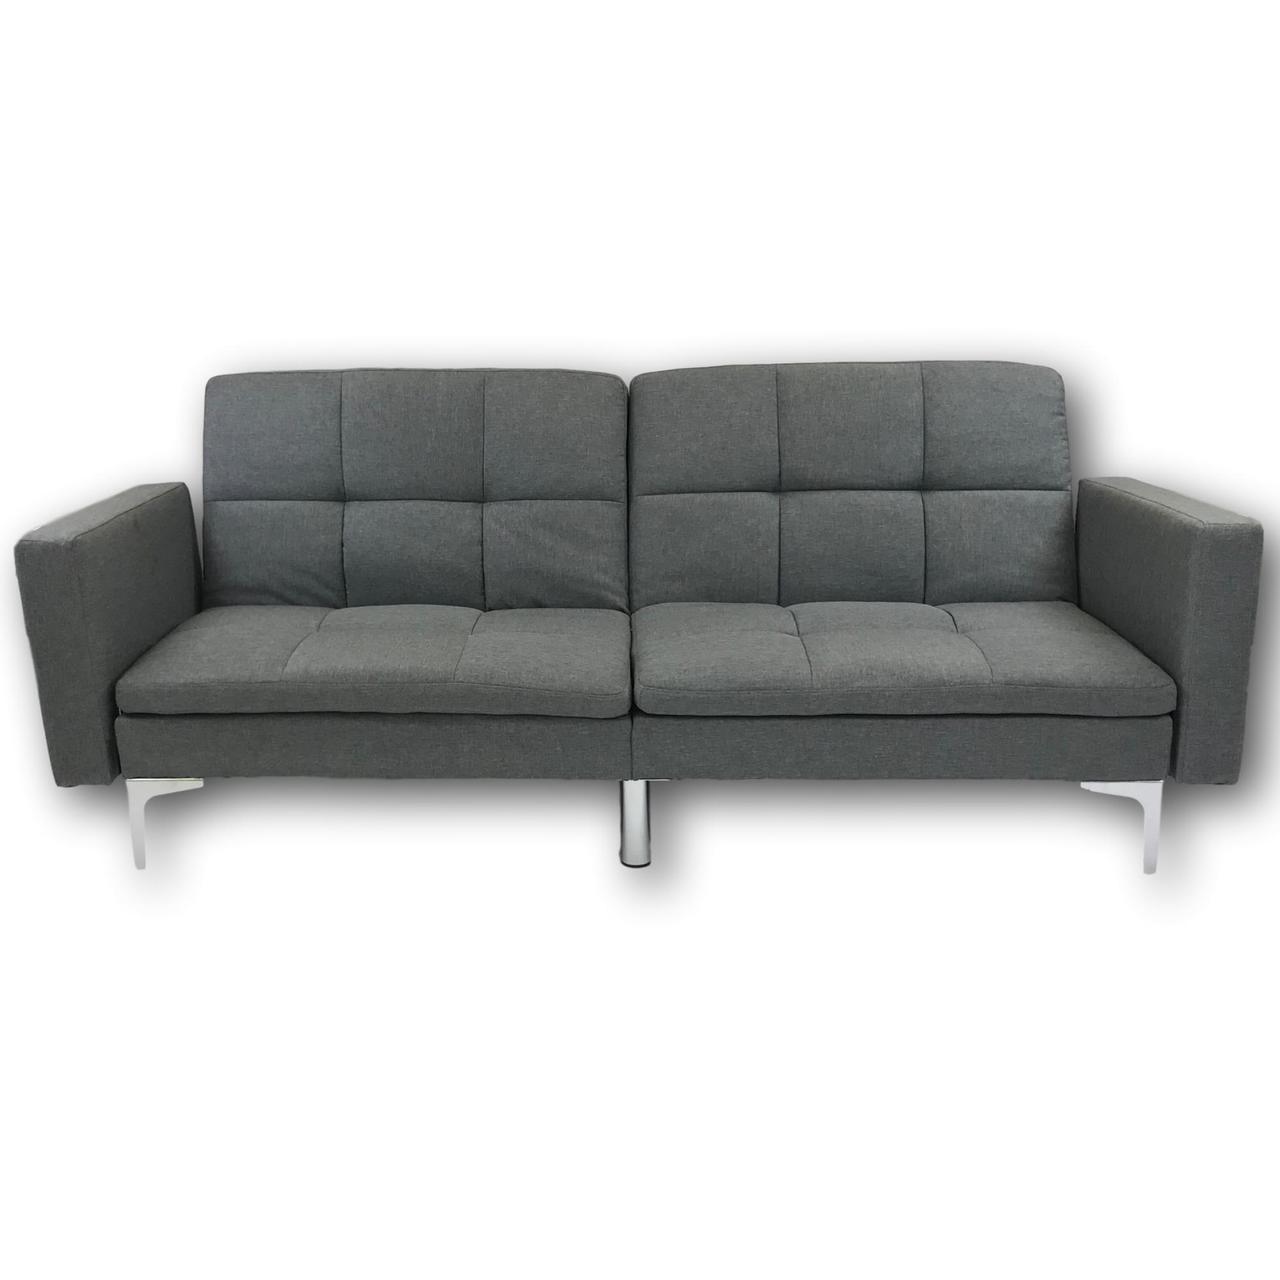 Viscologic Clarke Split Back Convertible Futon Sofa Bed Lounger Love Seat Grey